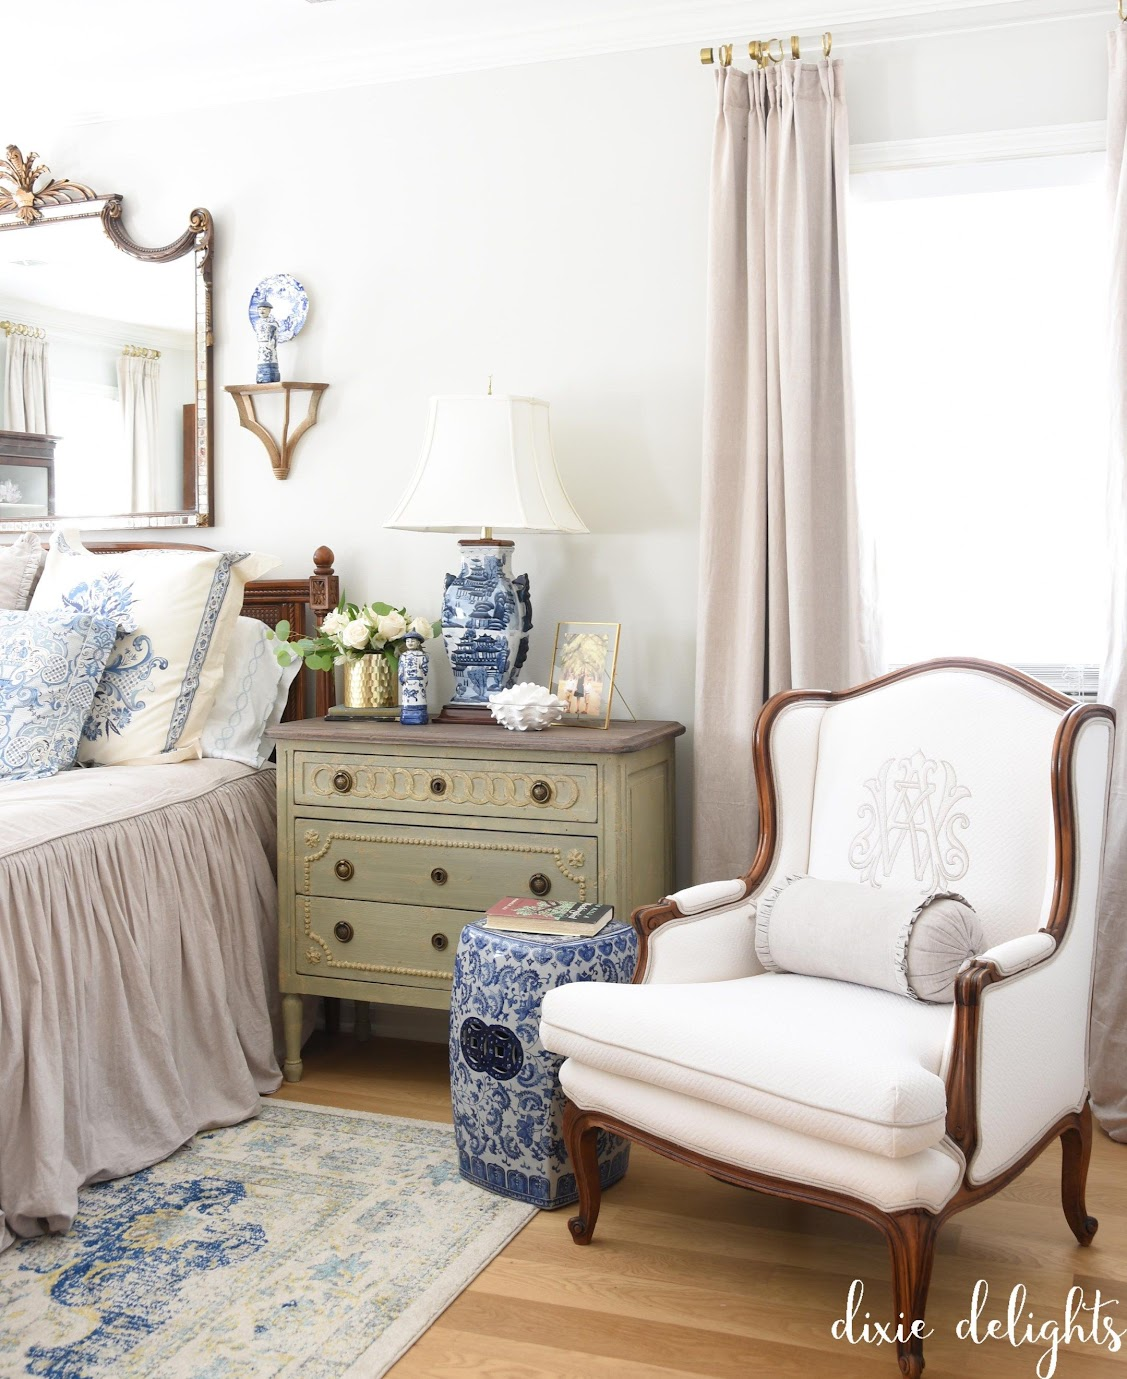 Cote de texas french country fall blog tour for French country blog